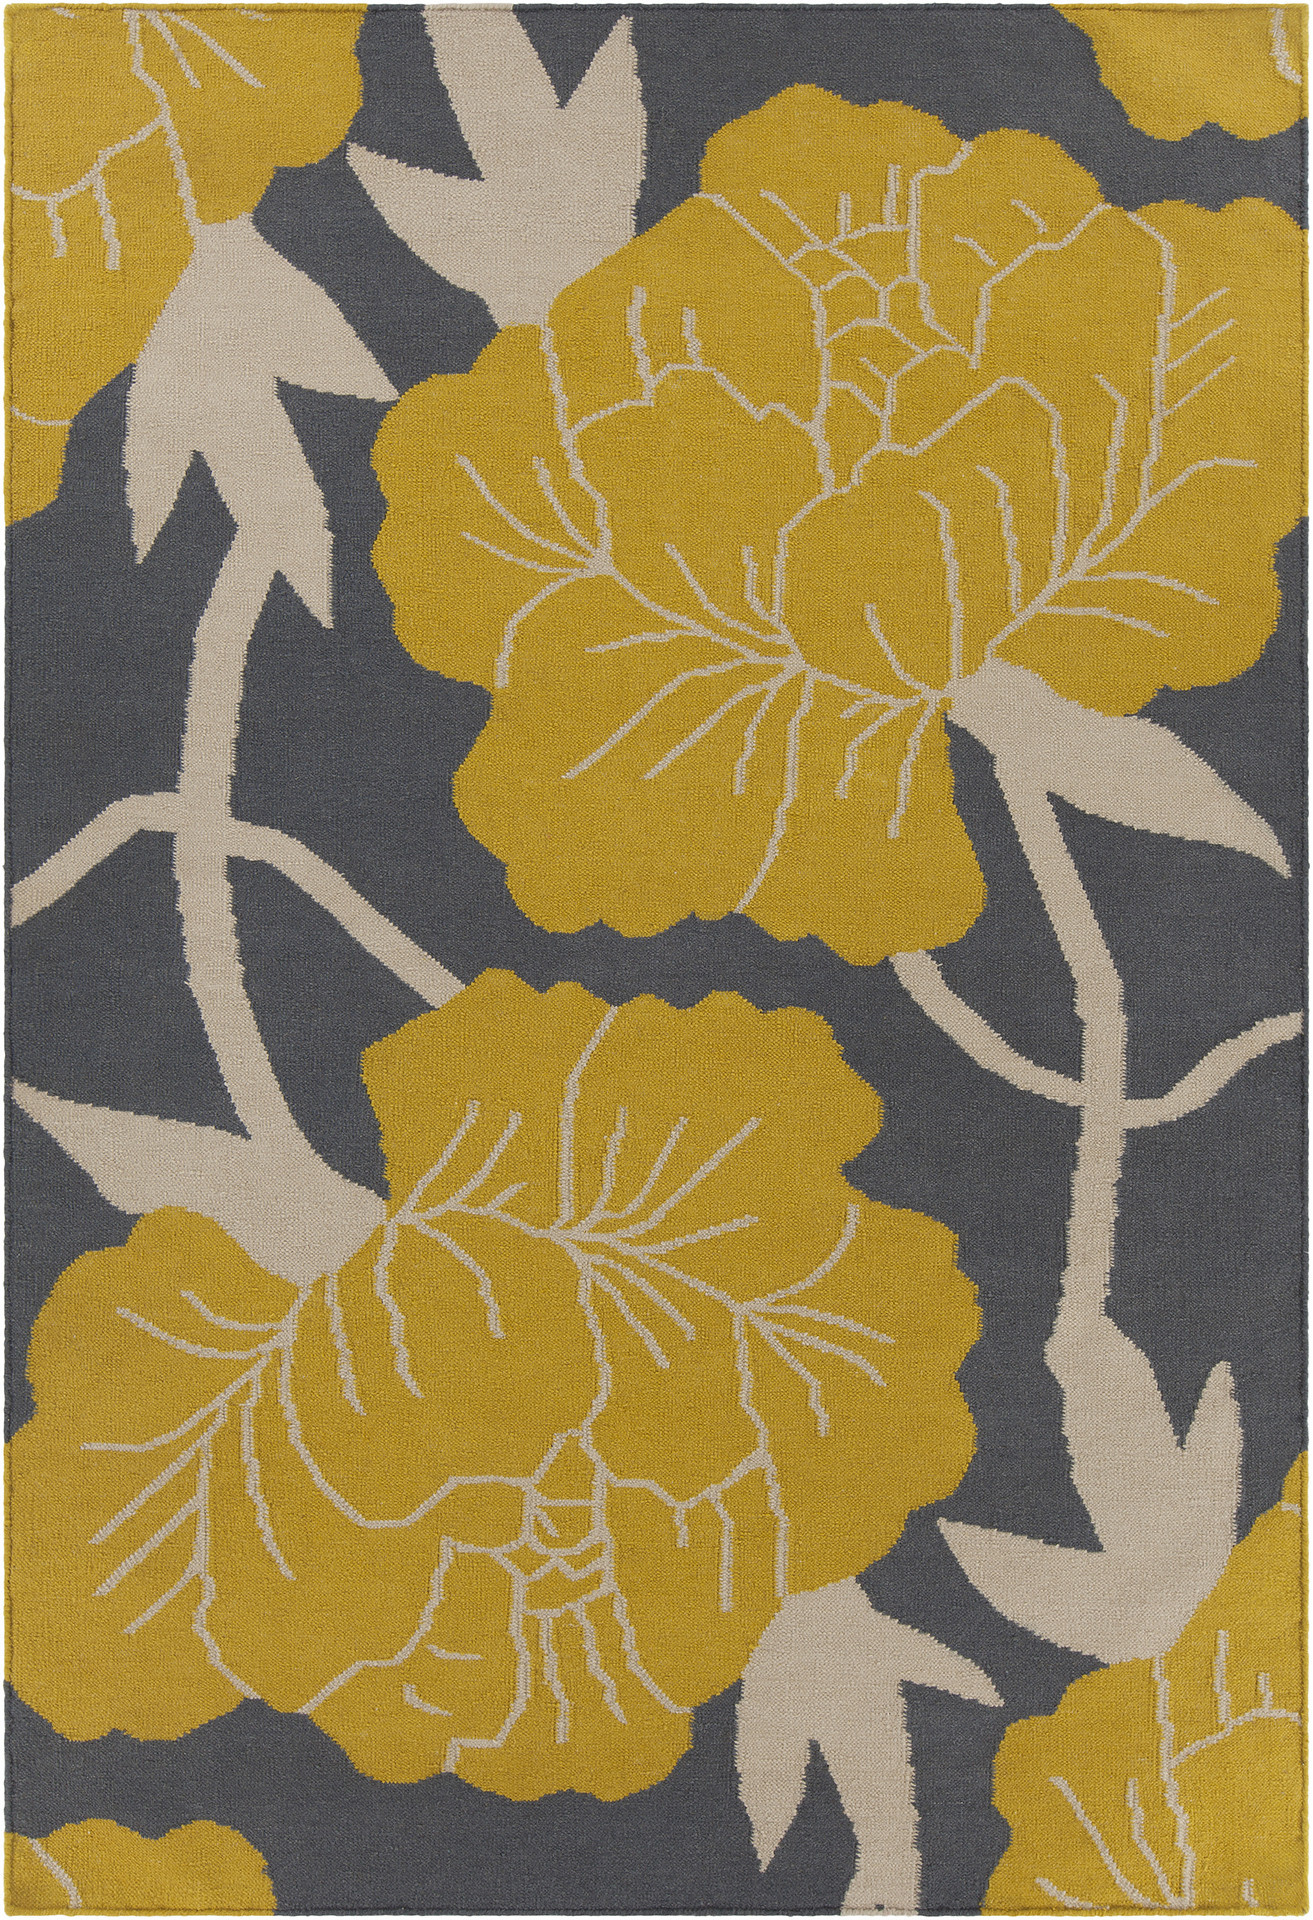 huge selections of thomas paul rugs for interiors  homesfeed - an area rug idea with beautiful yellow flower and white branches patterns